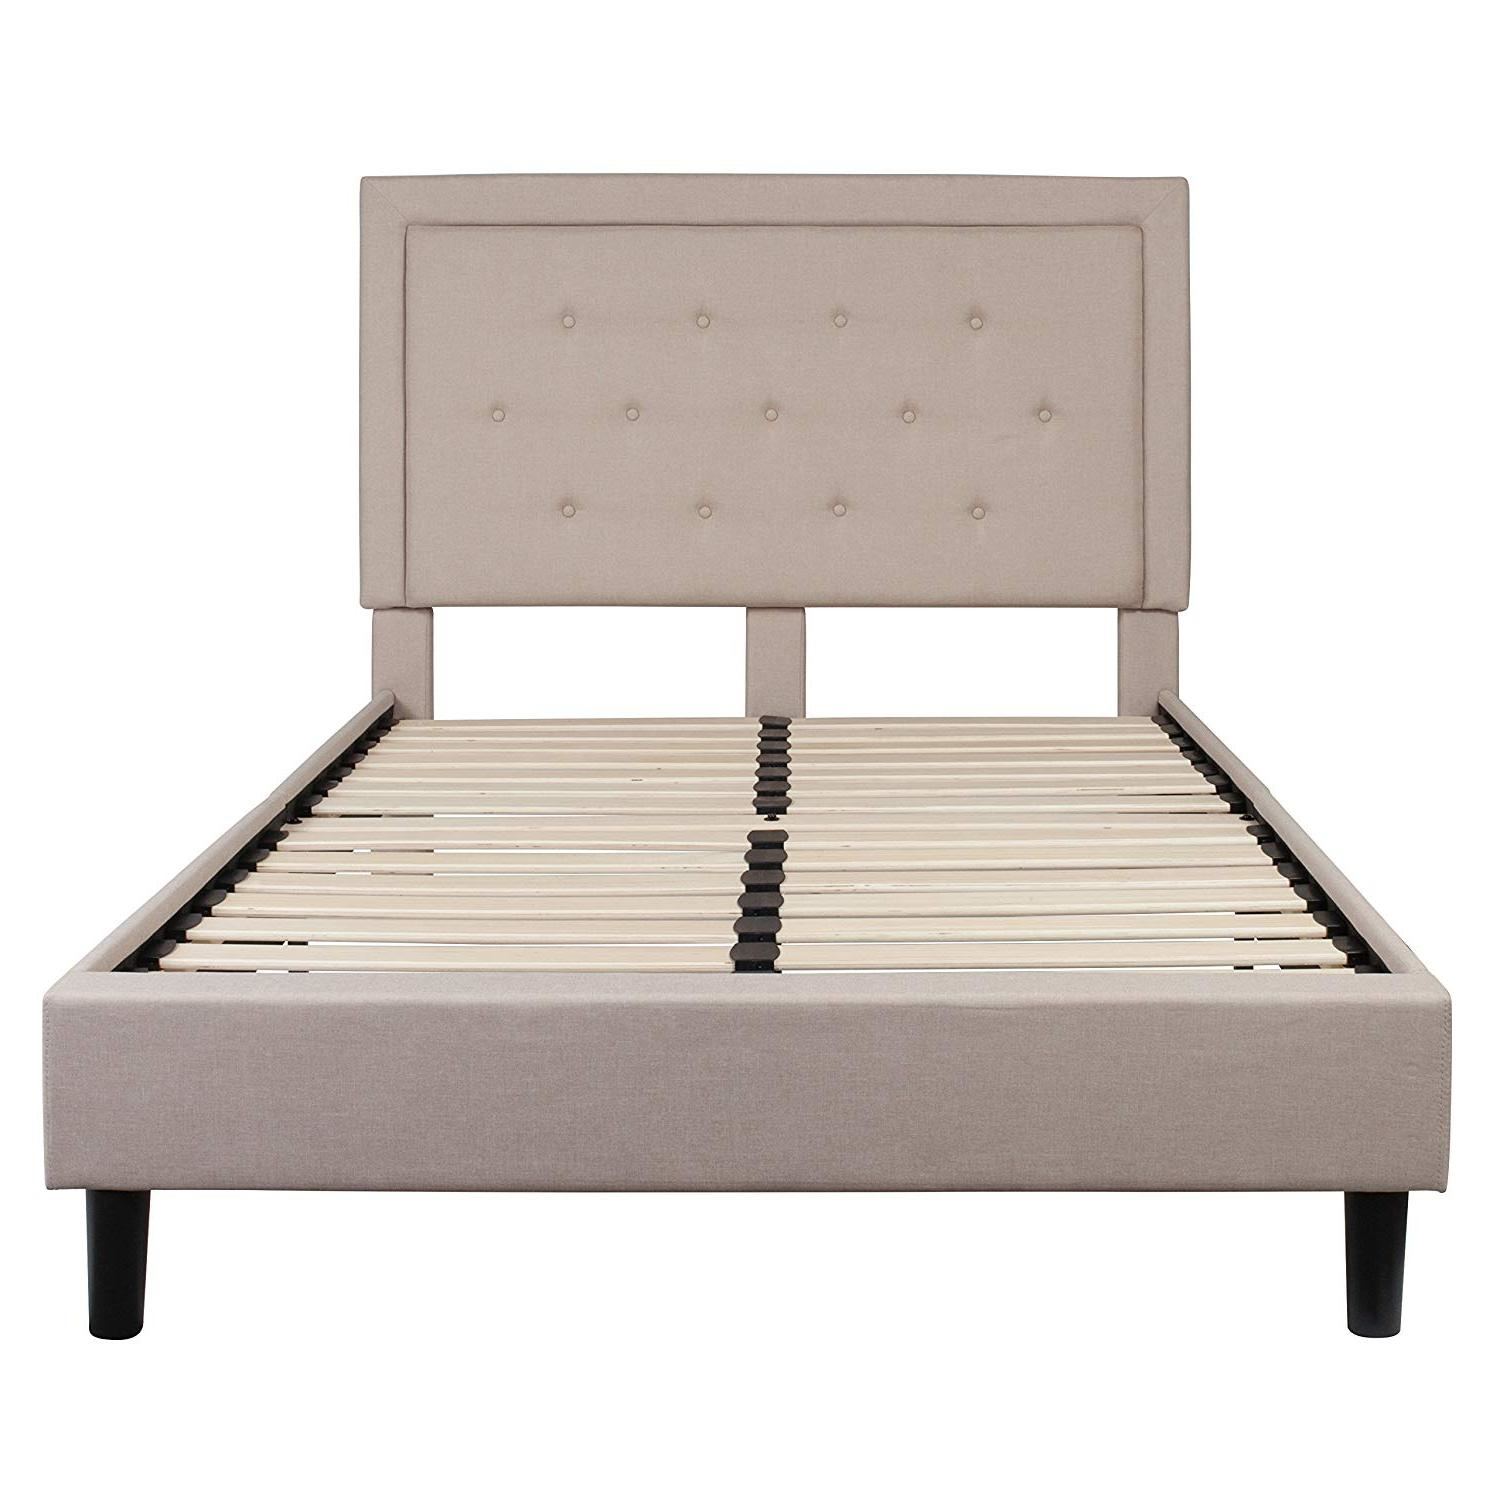 Full Beige Fabric Upholstered Platform Bed Frame With Tufted Headboard Fastfurnishings Com